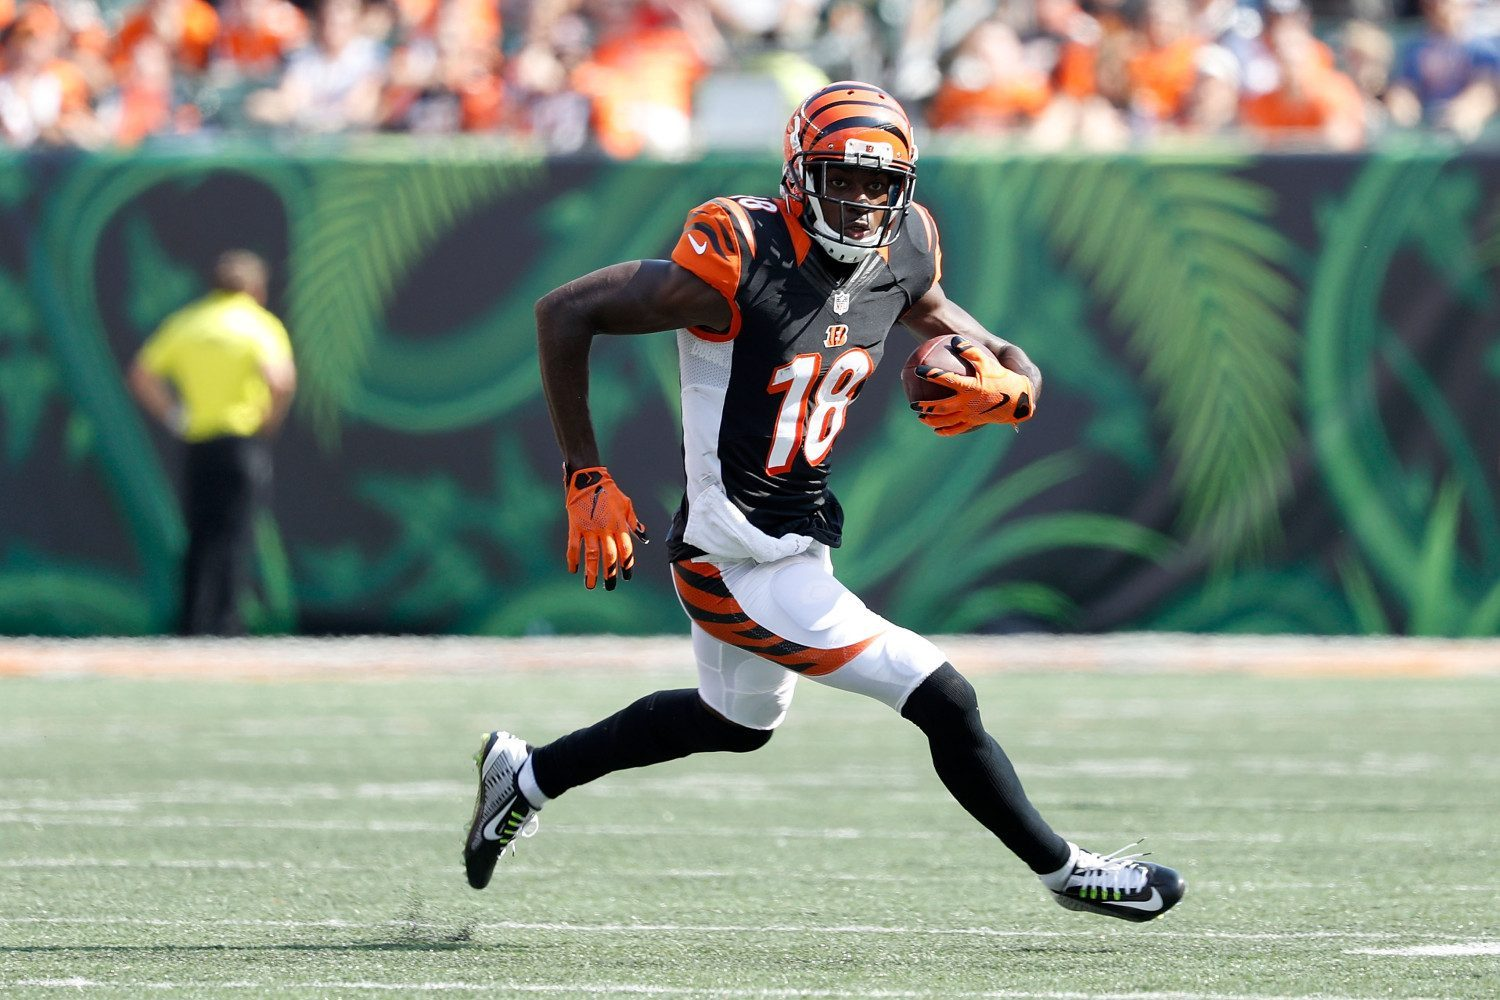 CINCINNATI, OH - SEPTEMBER 25: A.J. Green #18 of the Cincinnati Bengals carries the ball during the fourth quarter of the game against the Denver Broncos at Paul Brown Stadium on September 25, 2016 in Cincinnati, Ohio. (Photo by Joe Robbins/Getty Images)